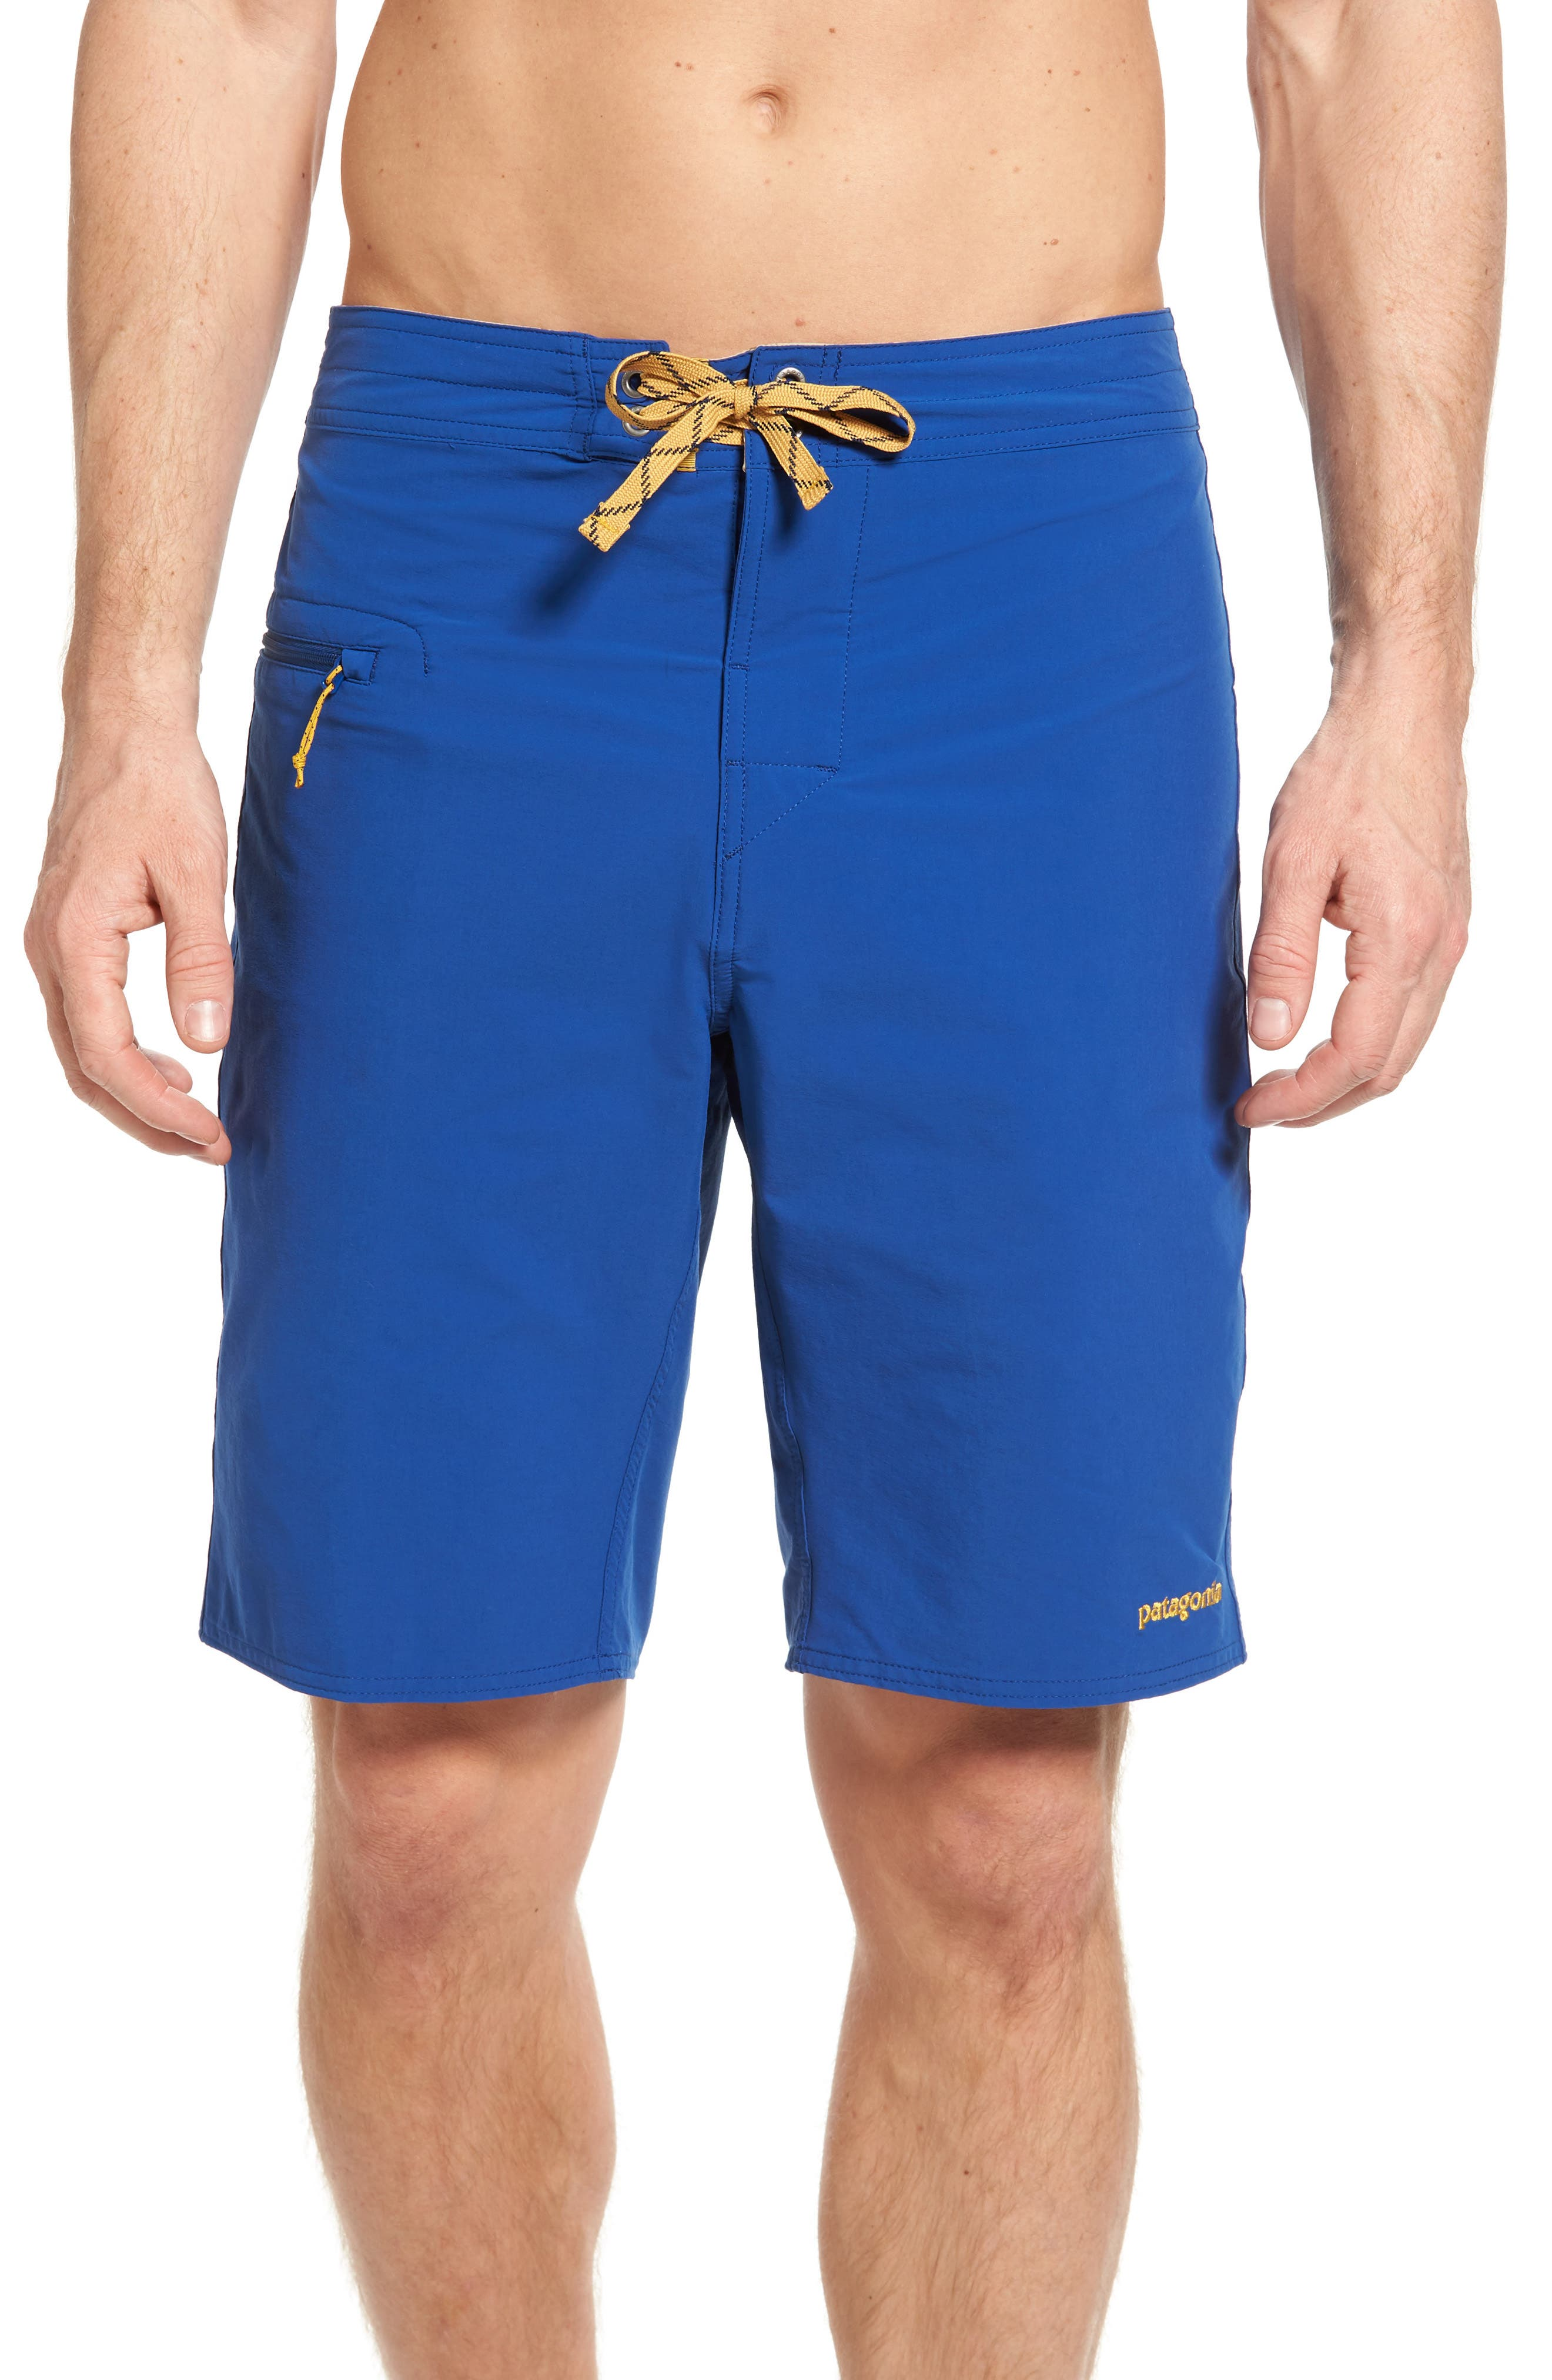 Wavefarer Board Shorts,                             Main thumbnail 1, color,                             BLUE